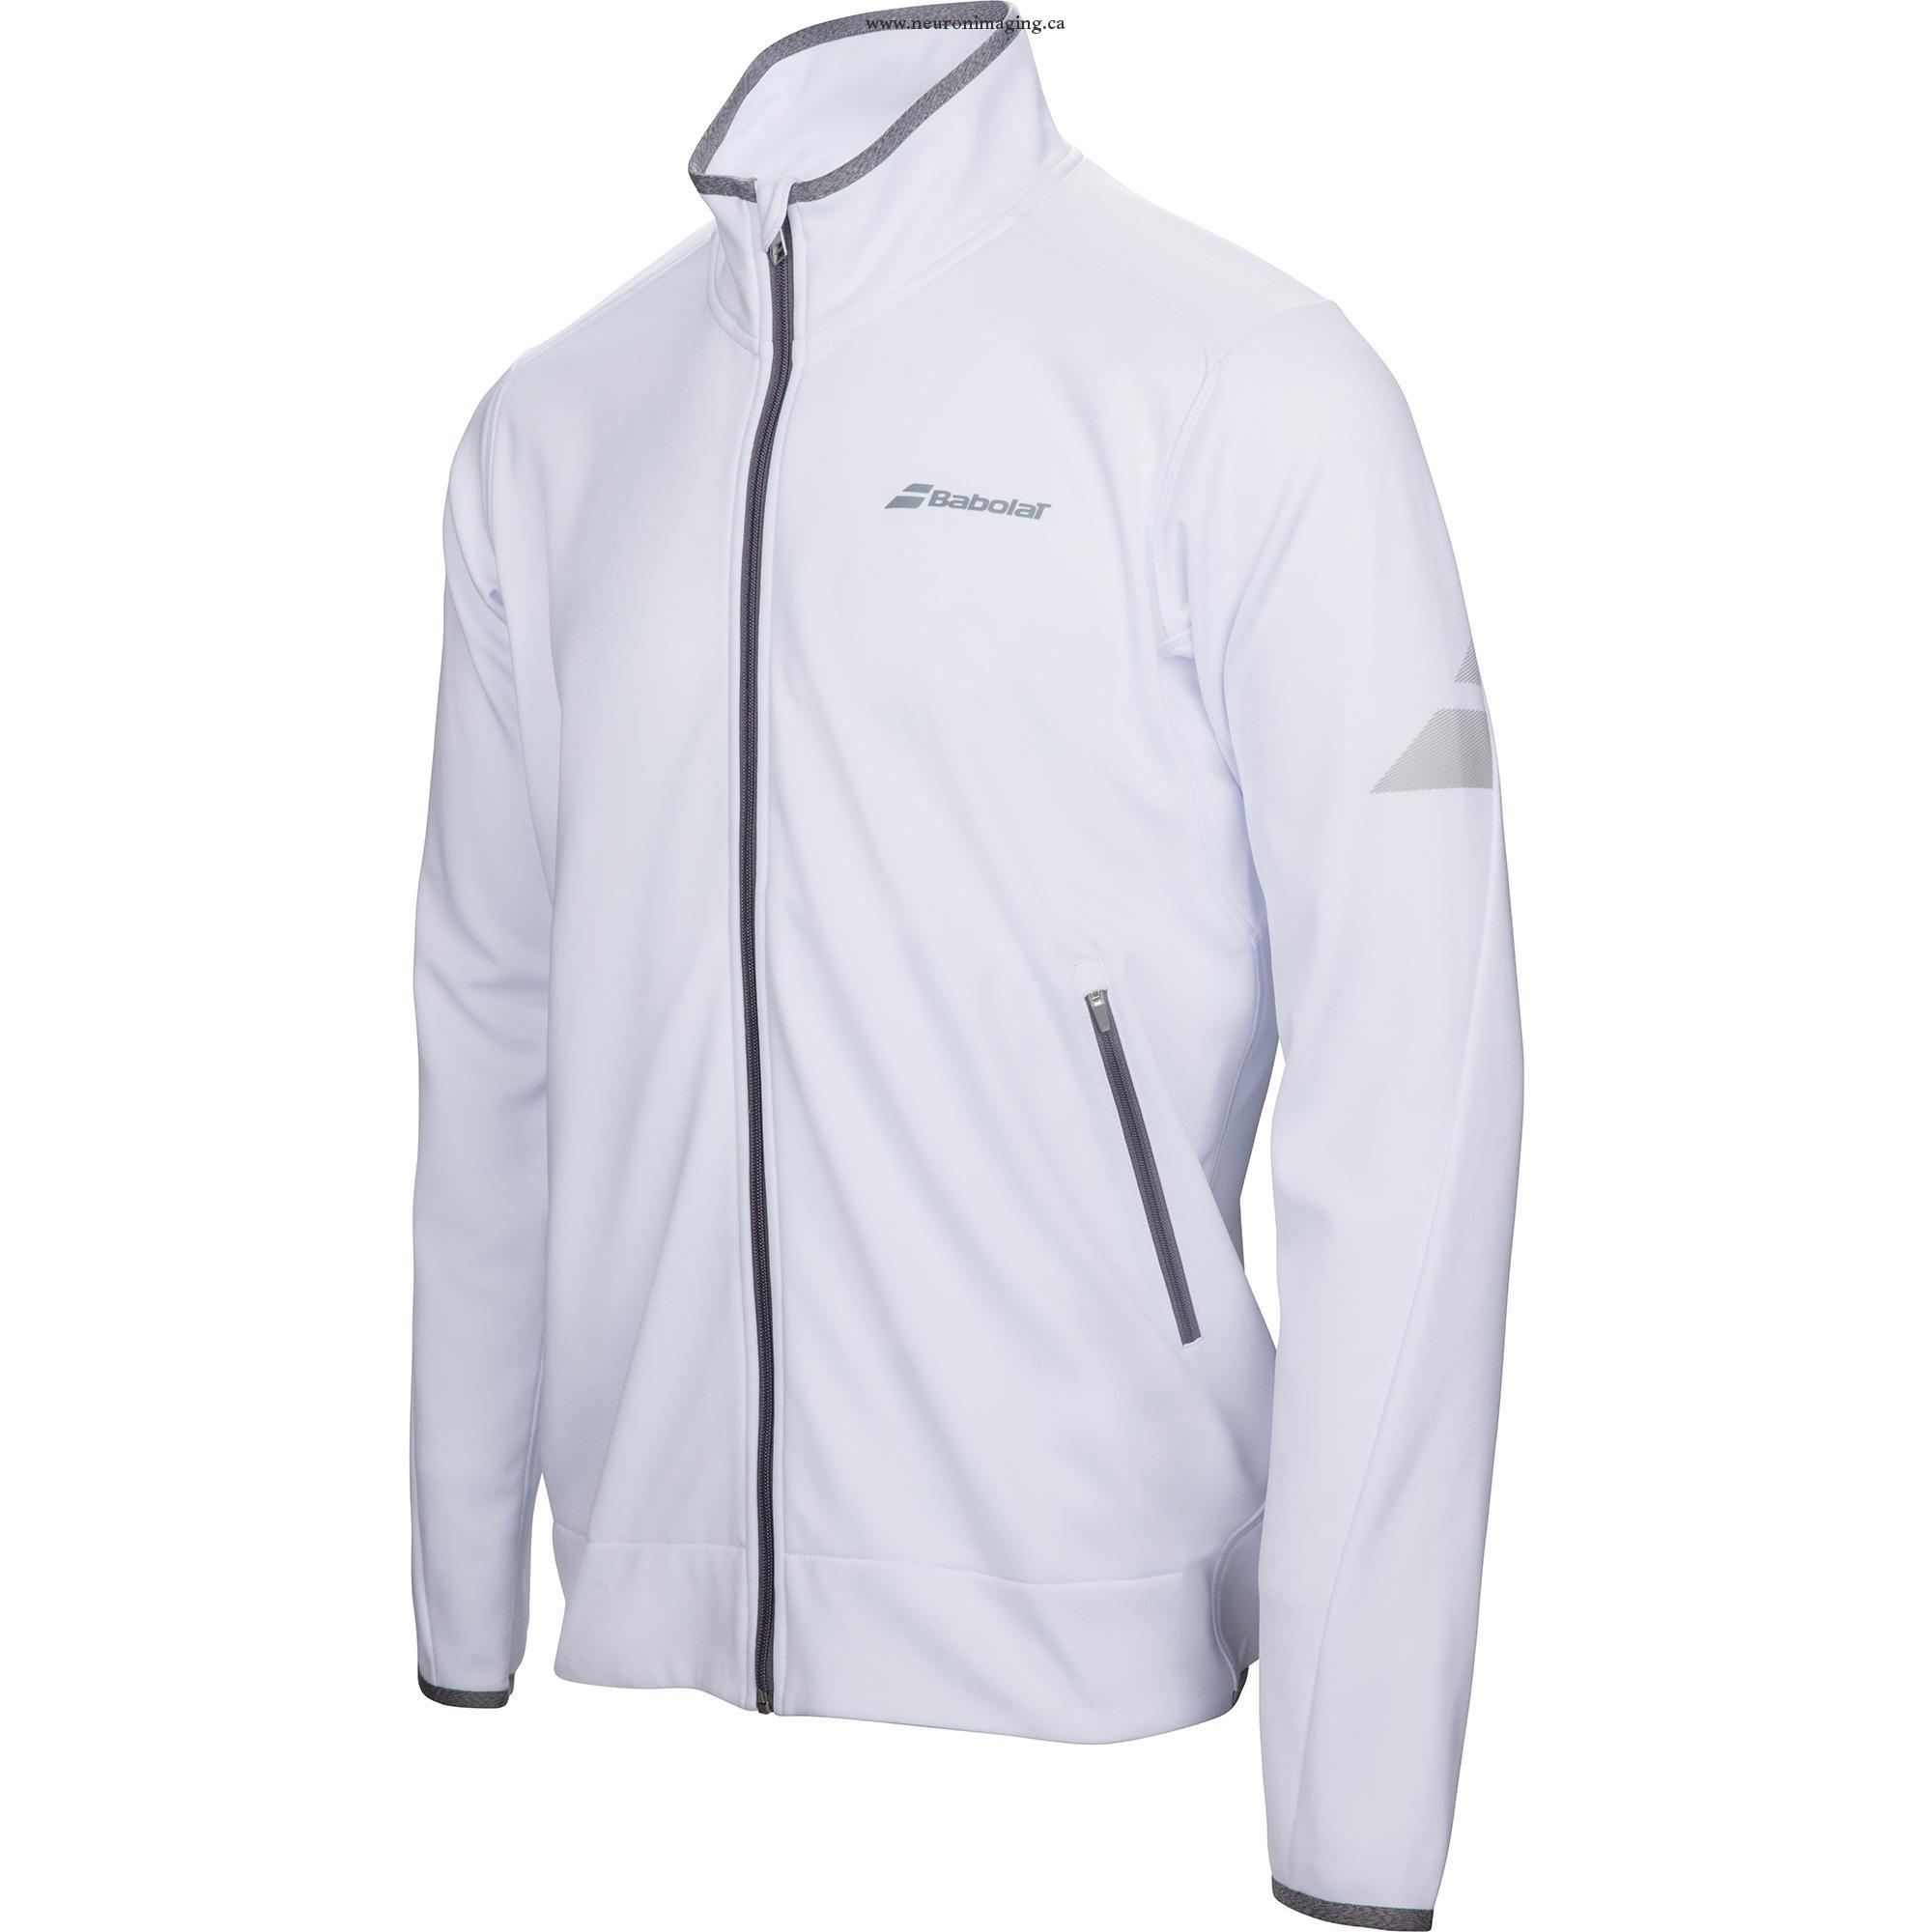 Babolat New Jacket Performance Bianco Uomo